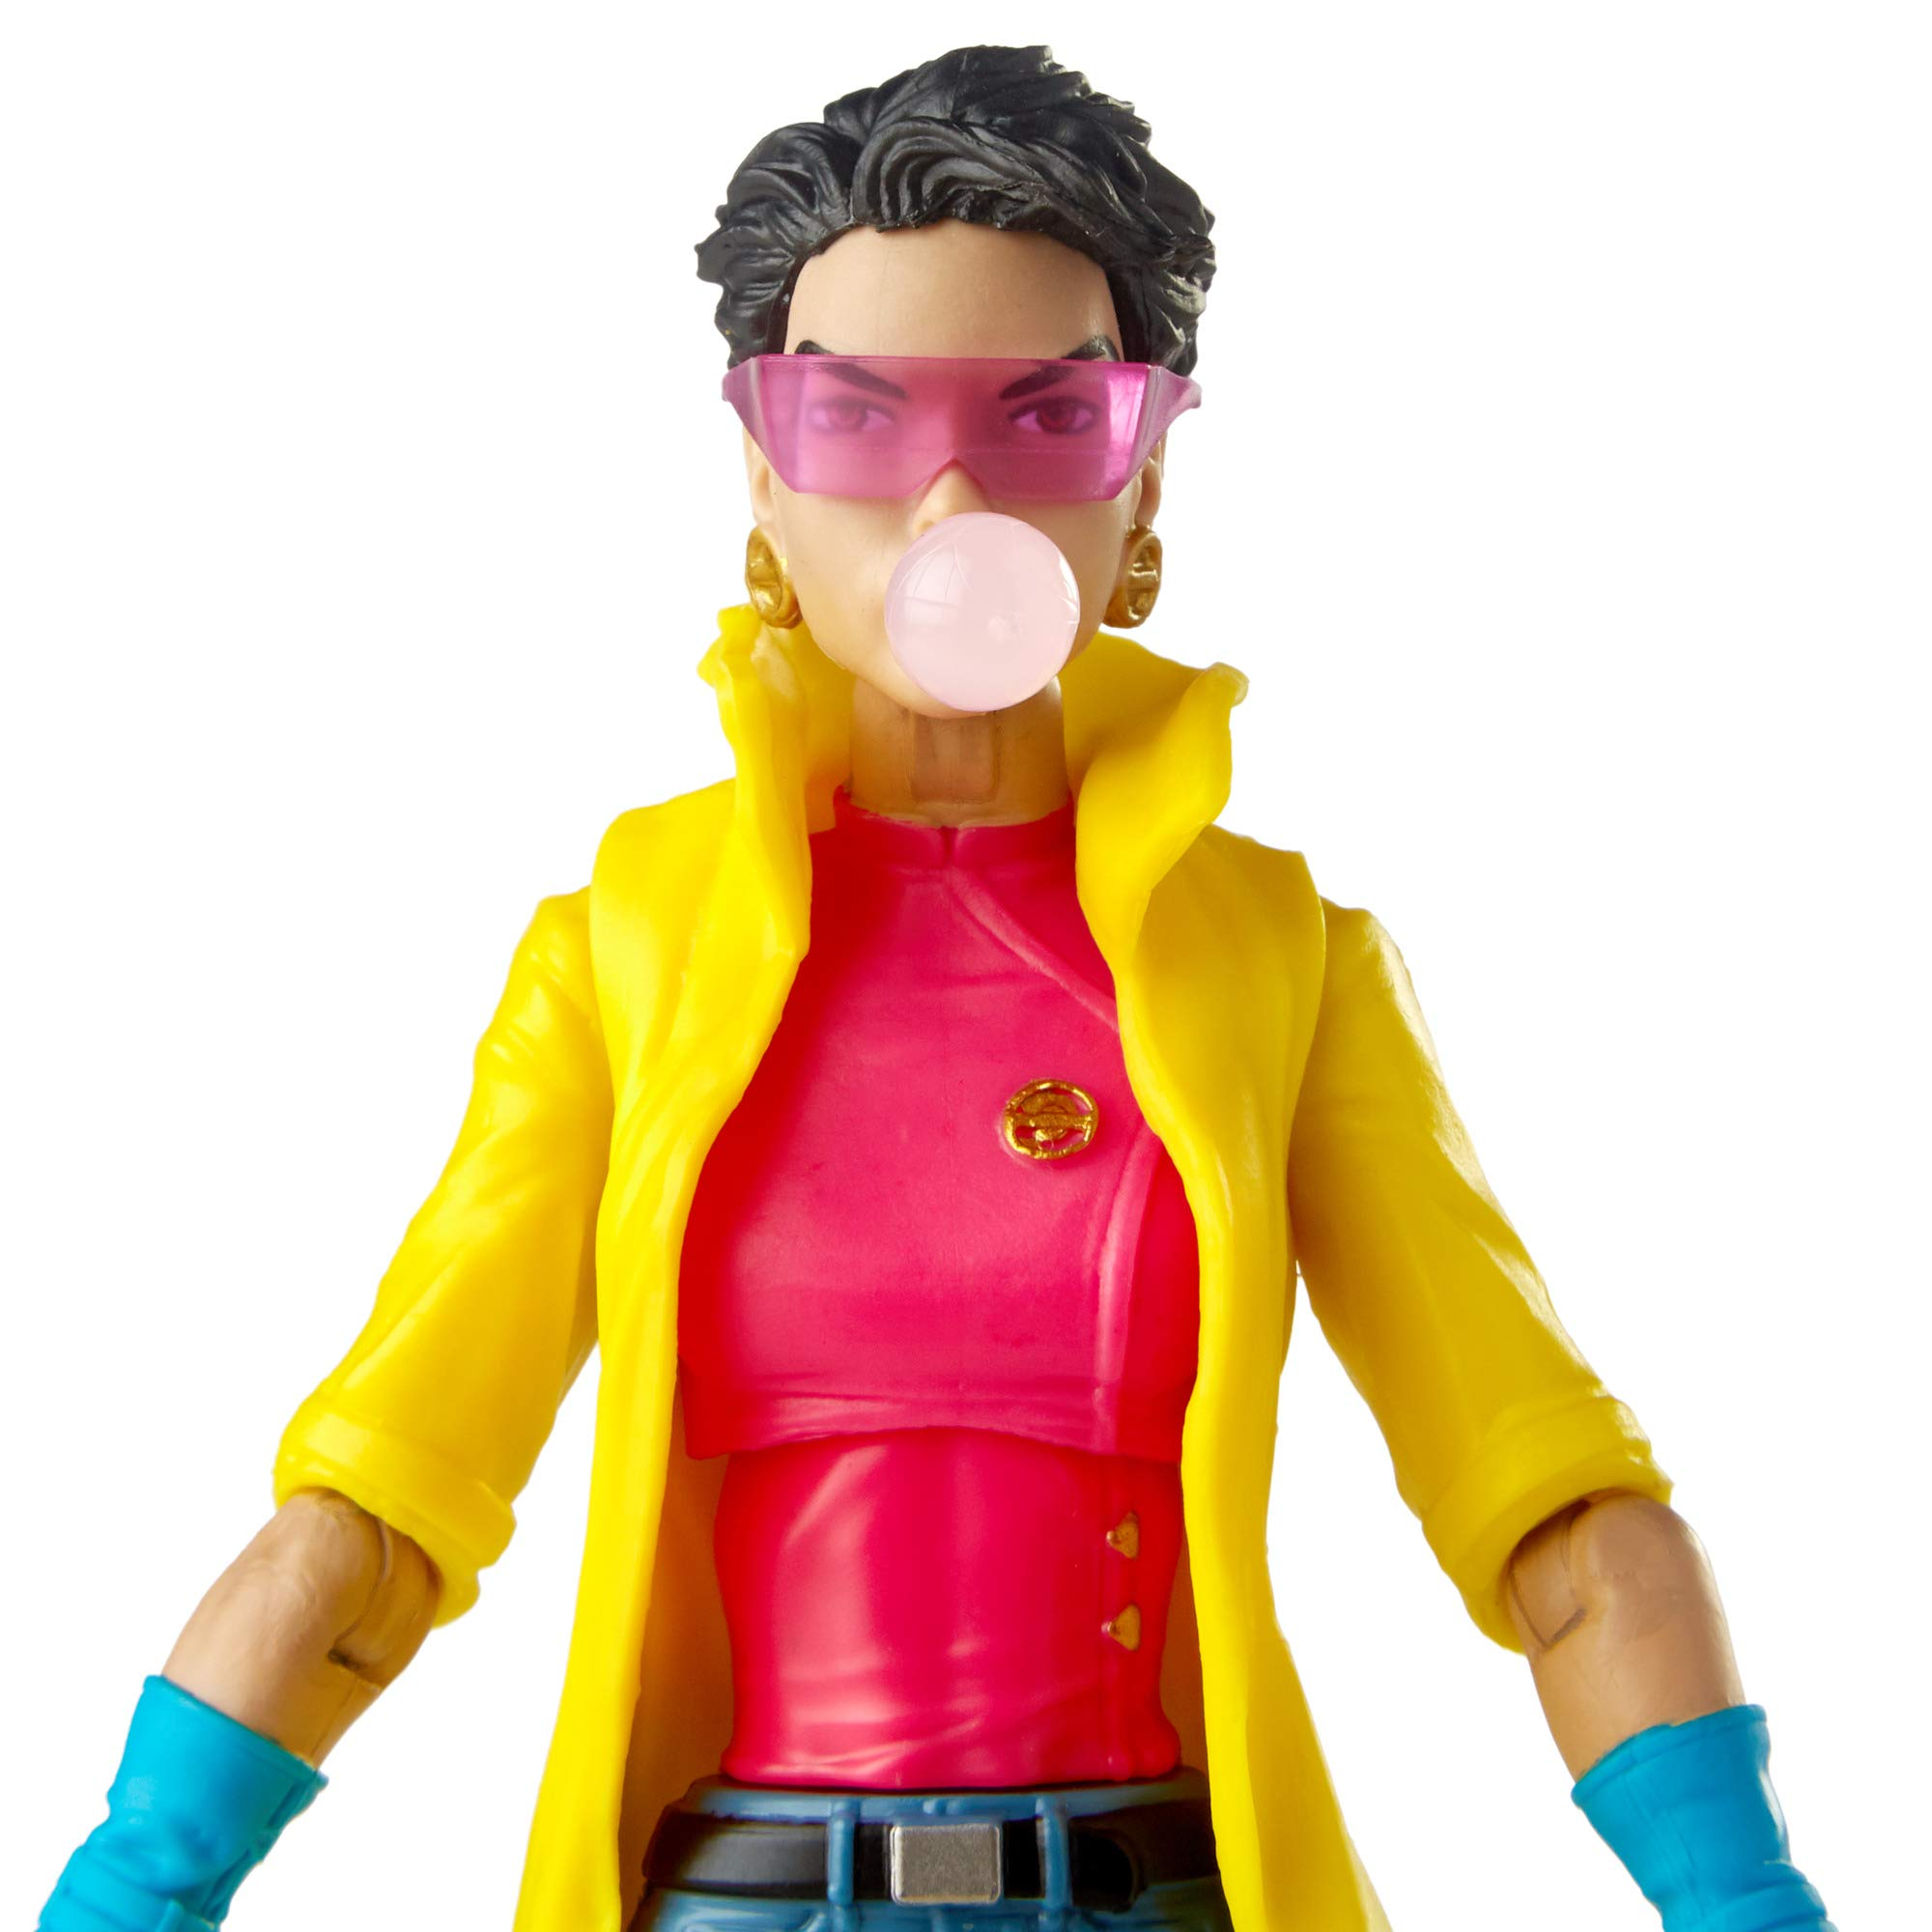 Marvel Hasbro Legends Series 6-inch Collectible Action Figure Jubilee Toy (X-Men Collection) Caliban Build-a-Figure Part by Marvel (Image #5)